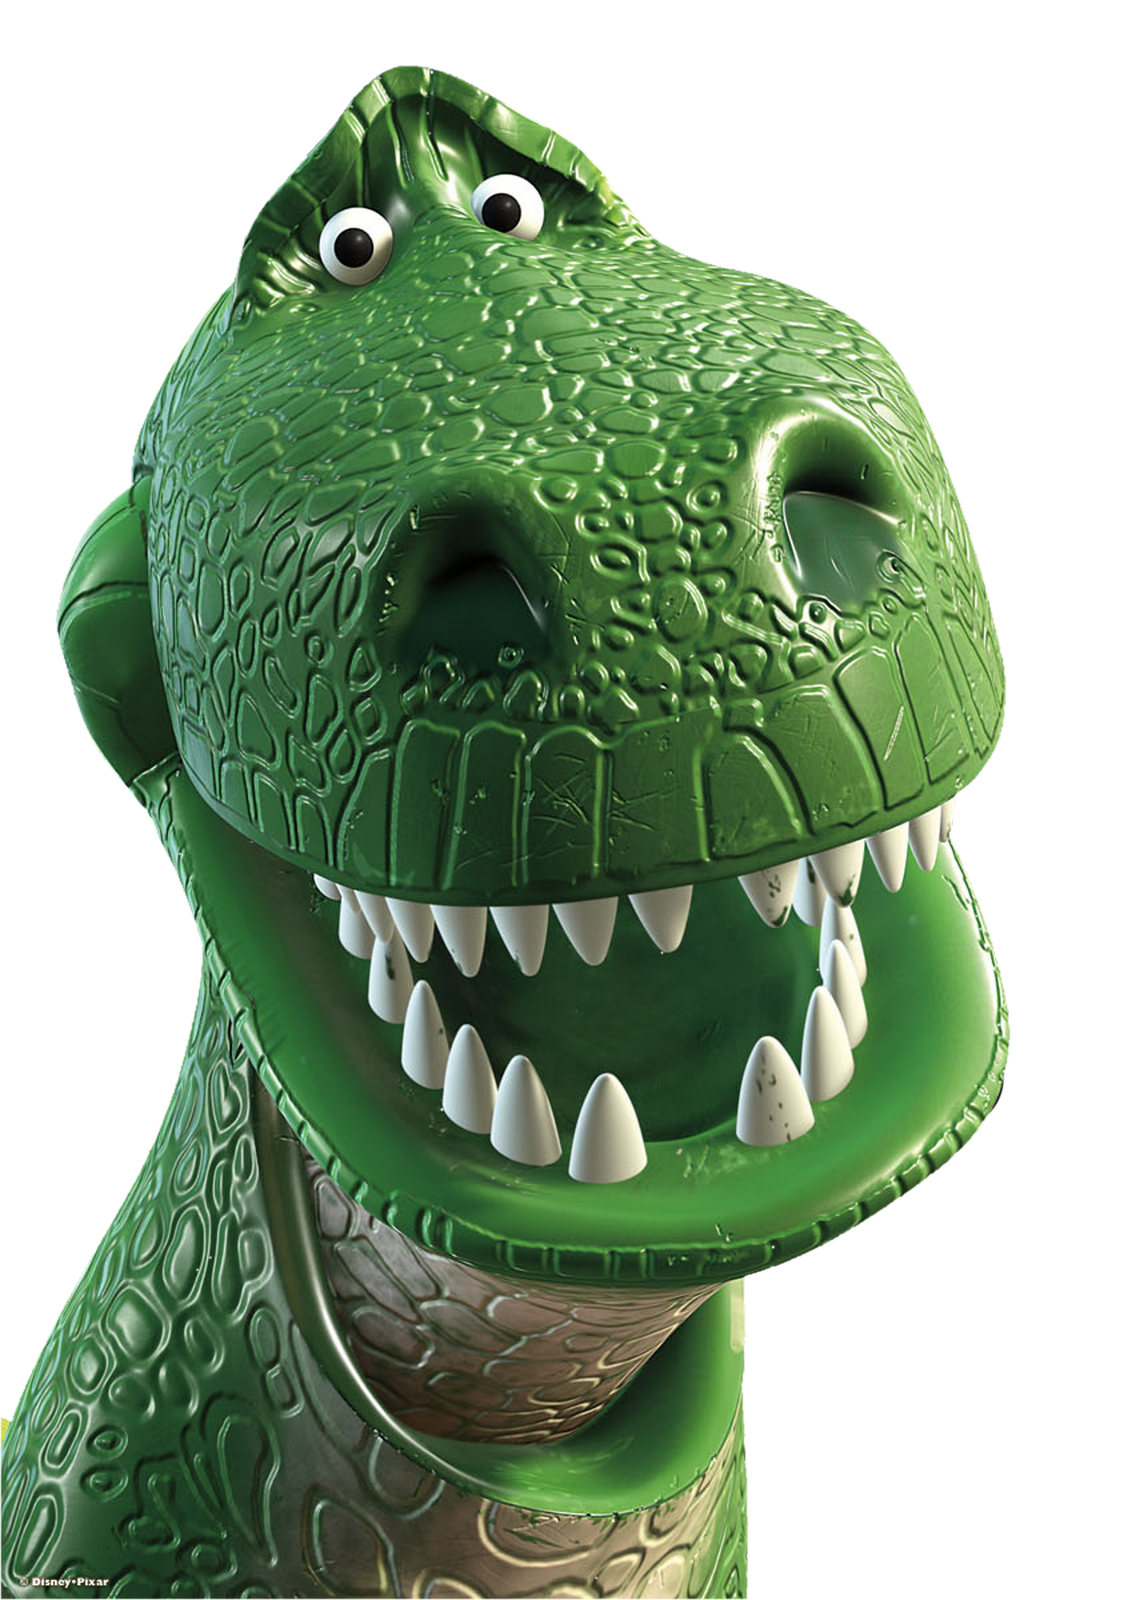 Images for toy story. Mouth clipart t rex